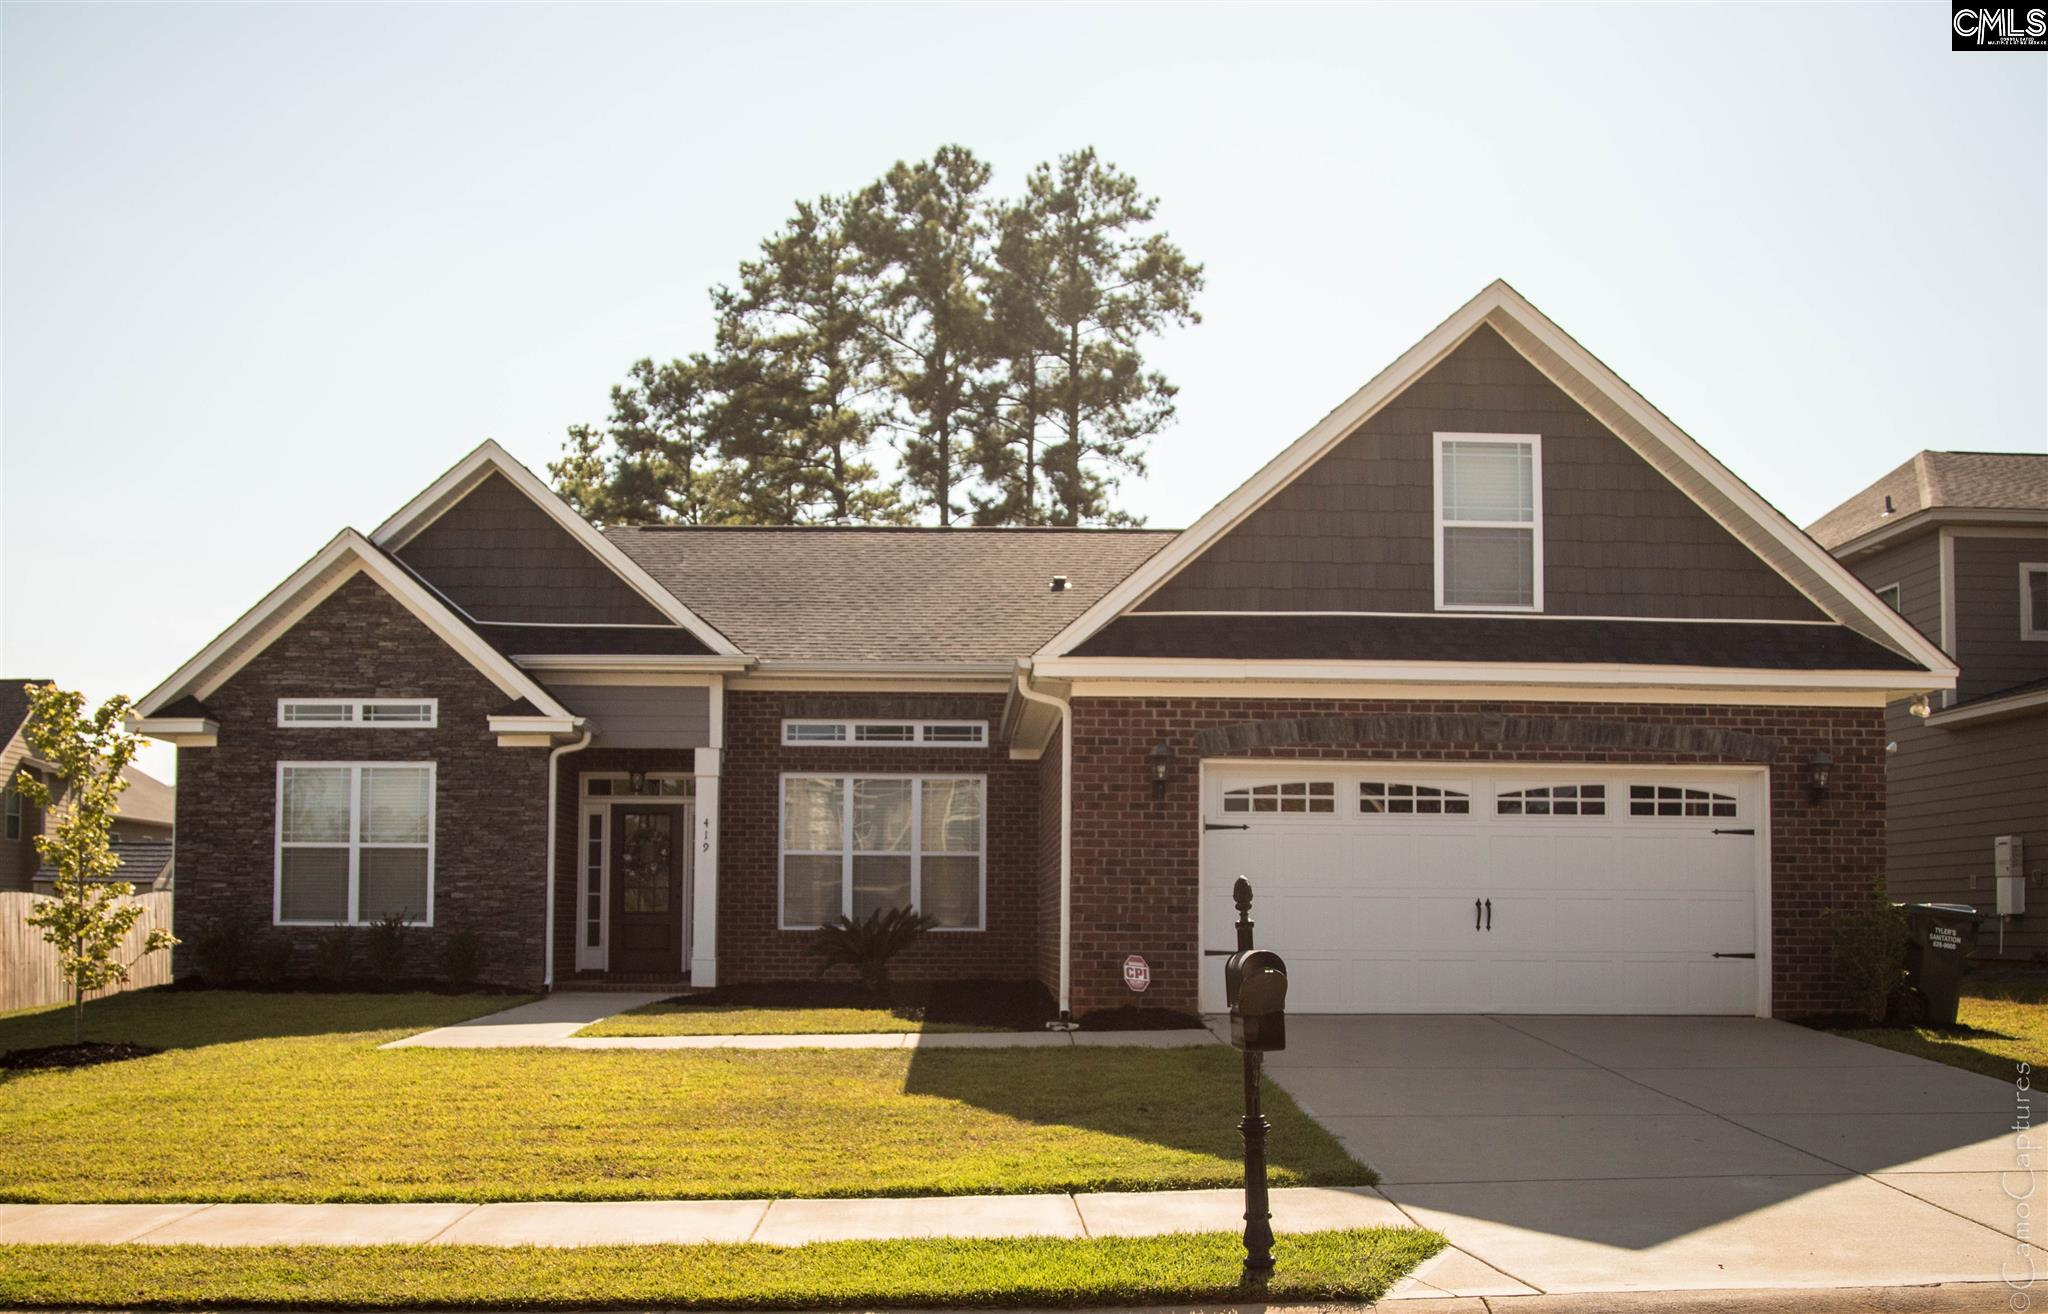 419 Coral Rose Irmo, SC 29063